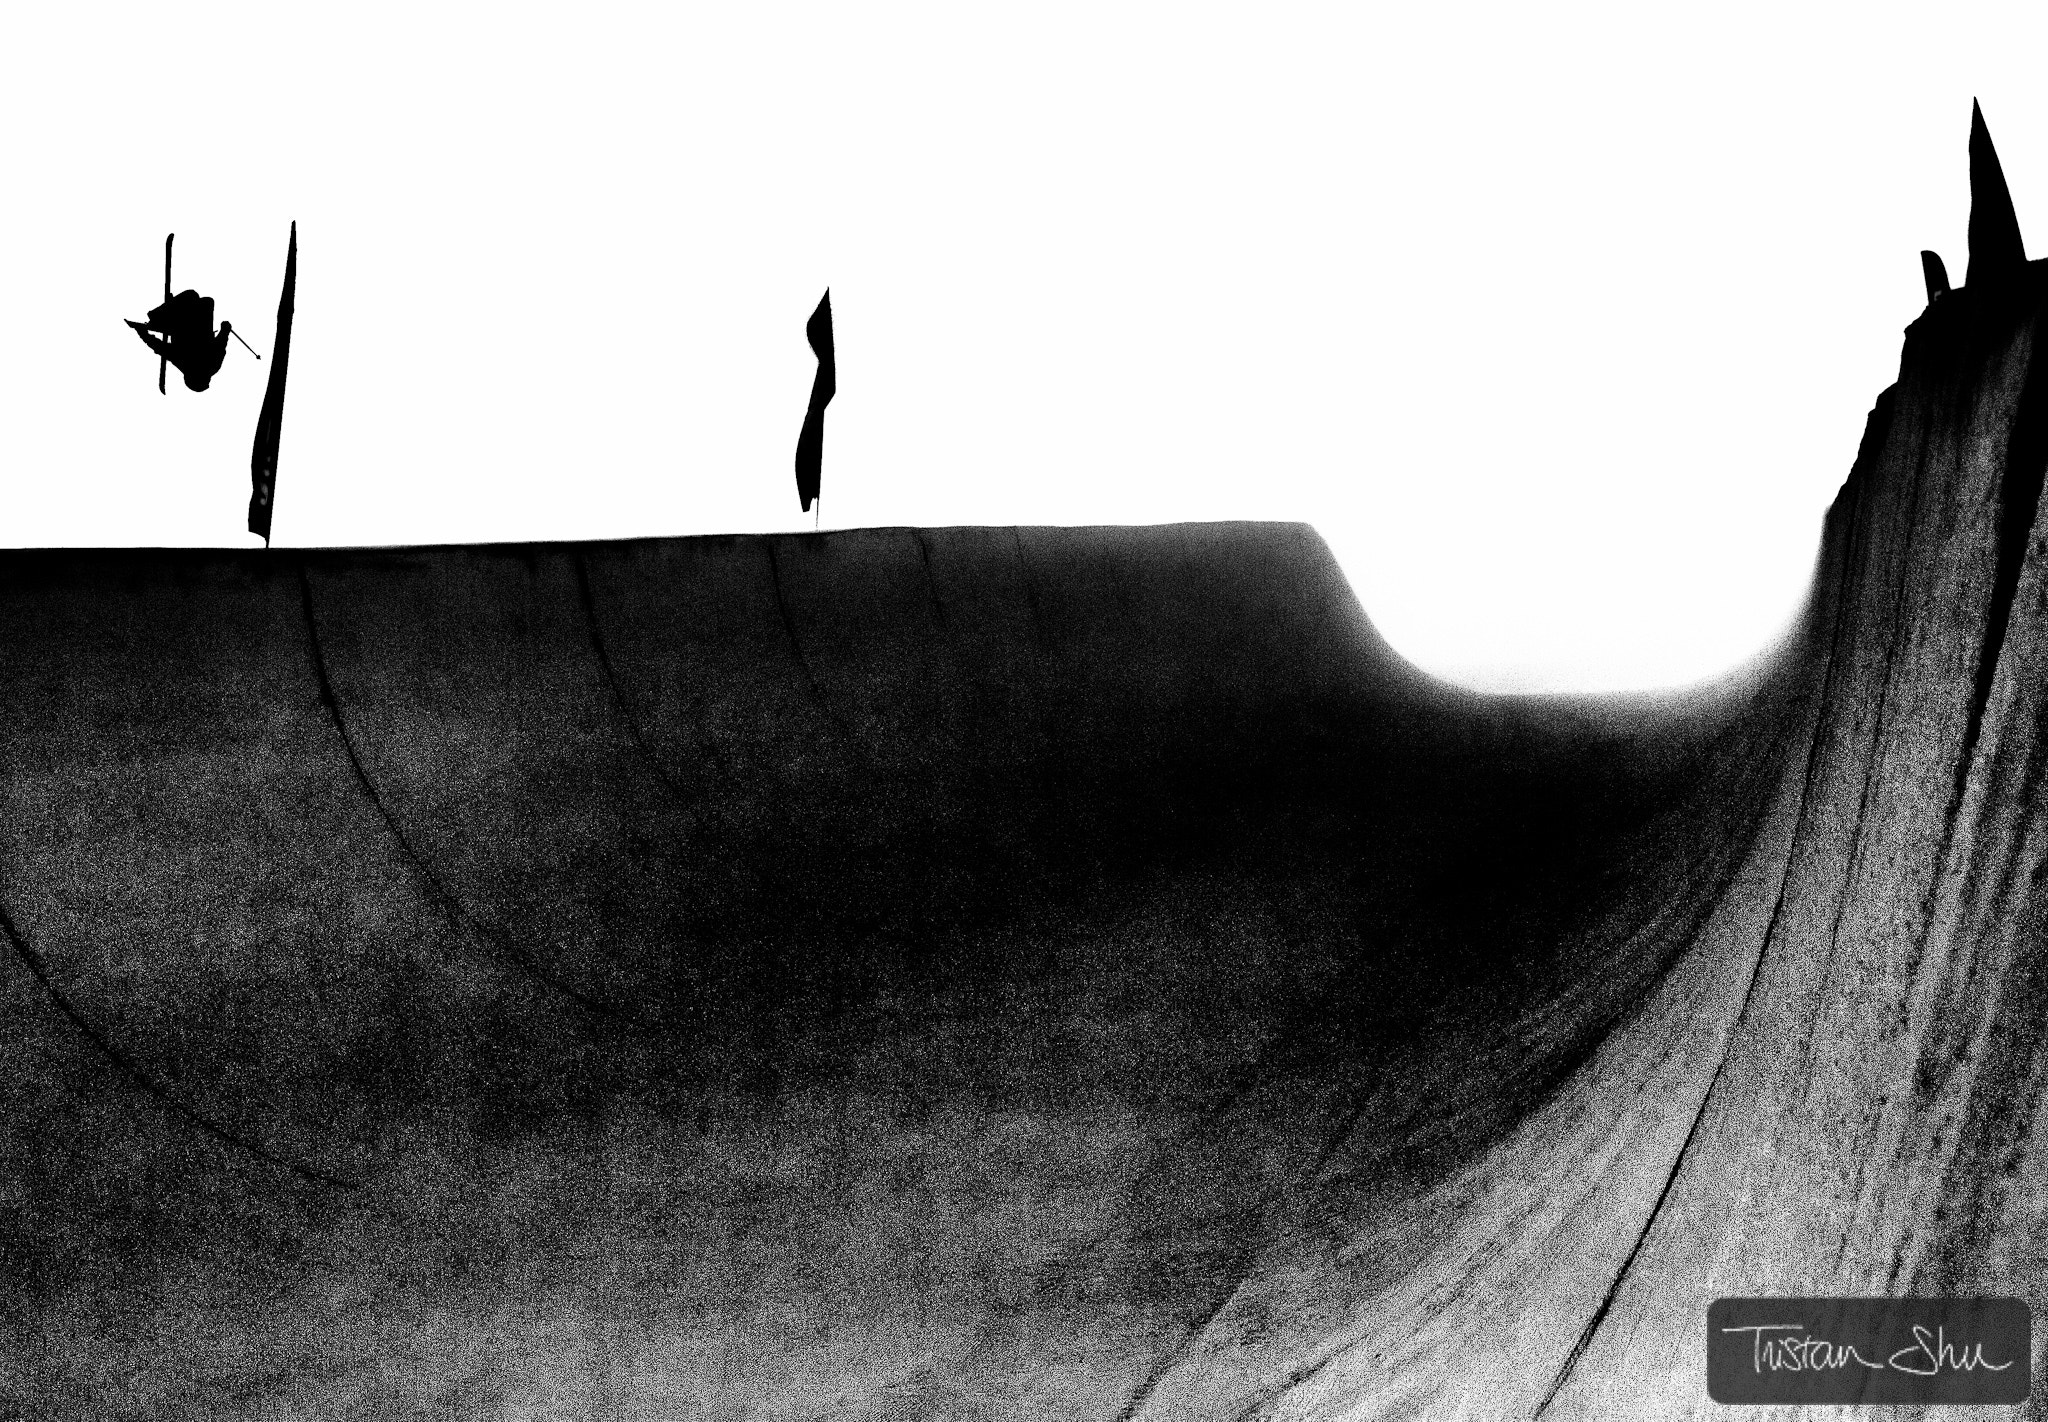 Photograph Superpipe training with Xavier Bertoni by Tristan Shu on 500px